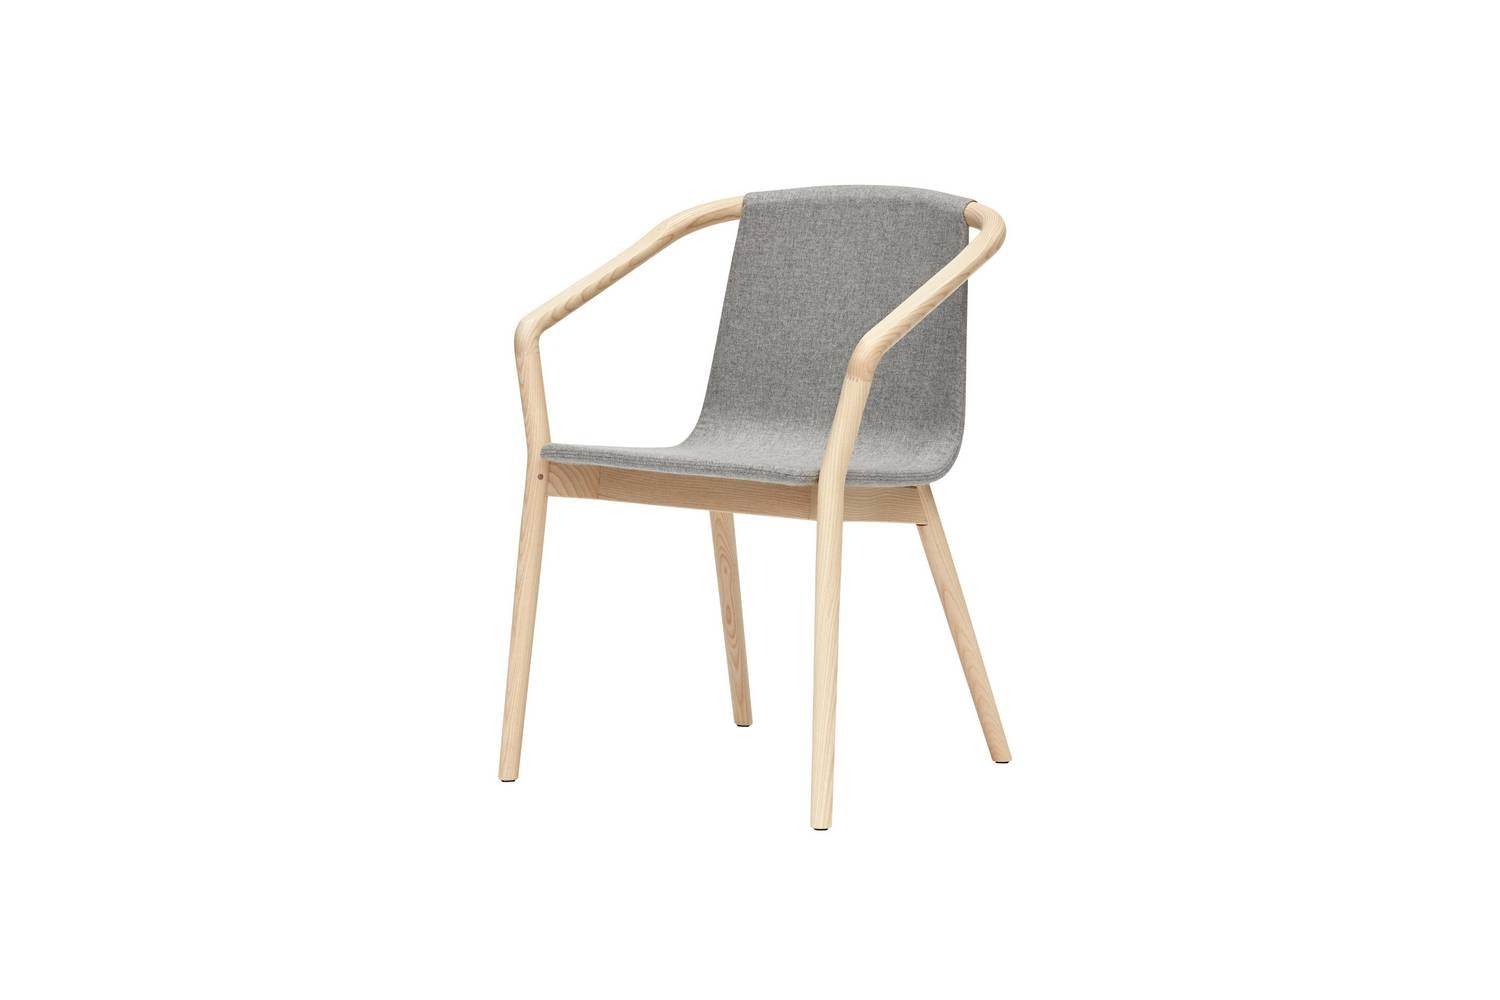 Exceptionnel Thomas Chair By Metrica For SP01